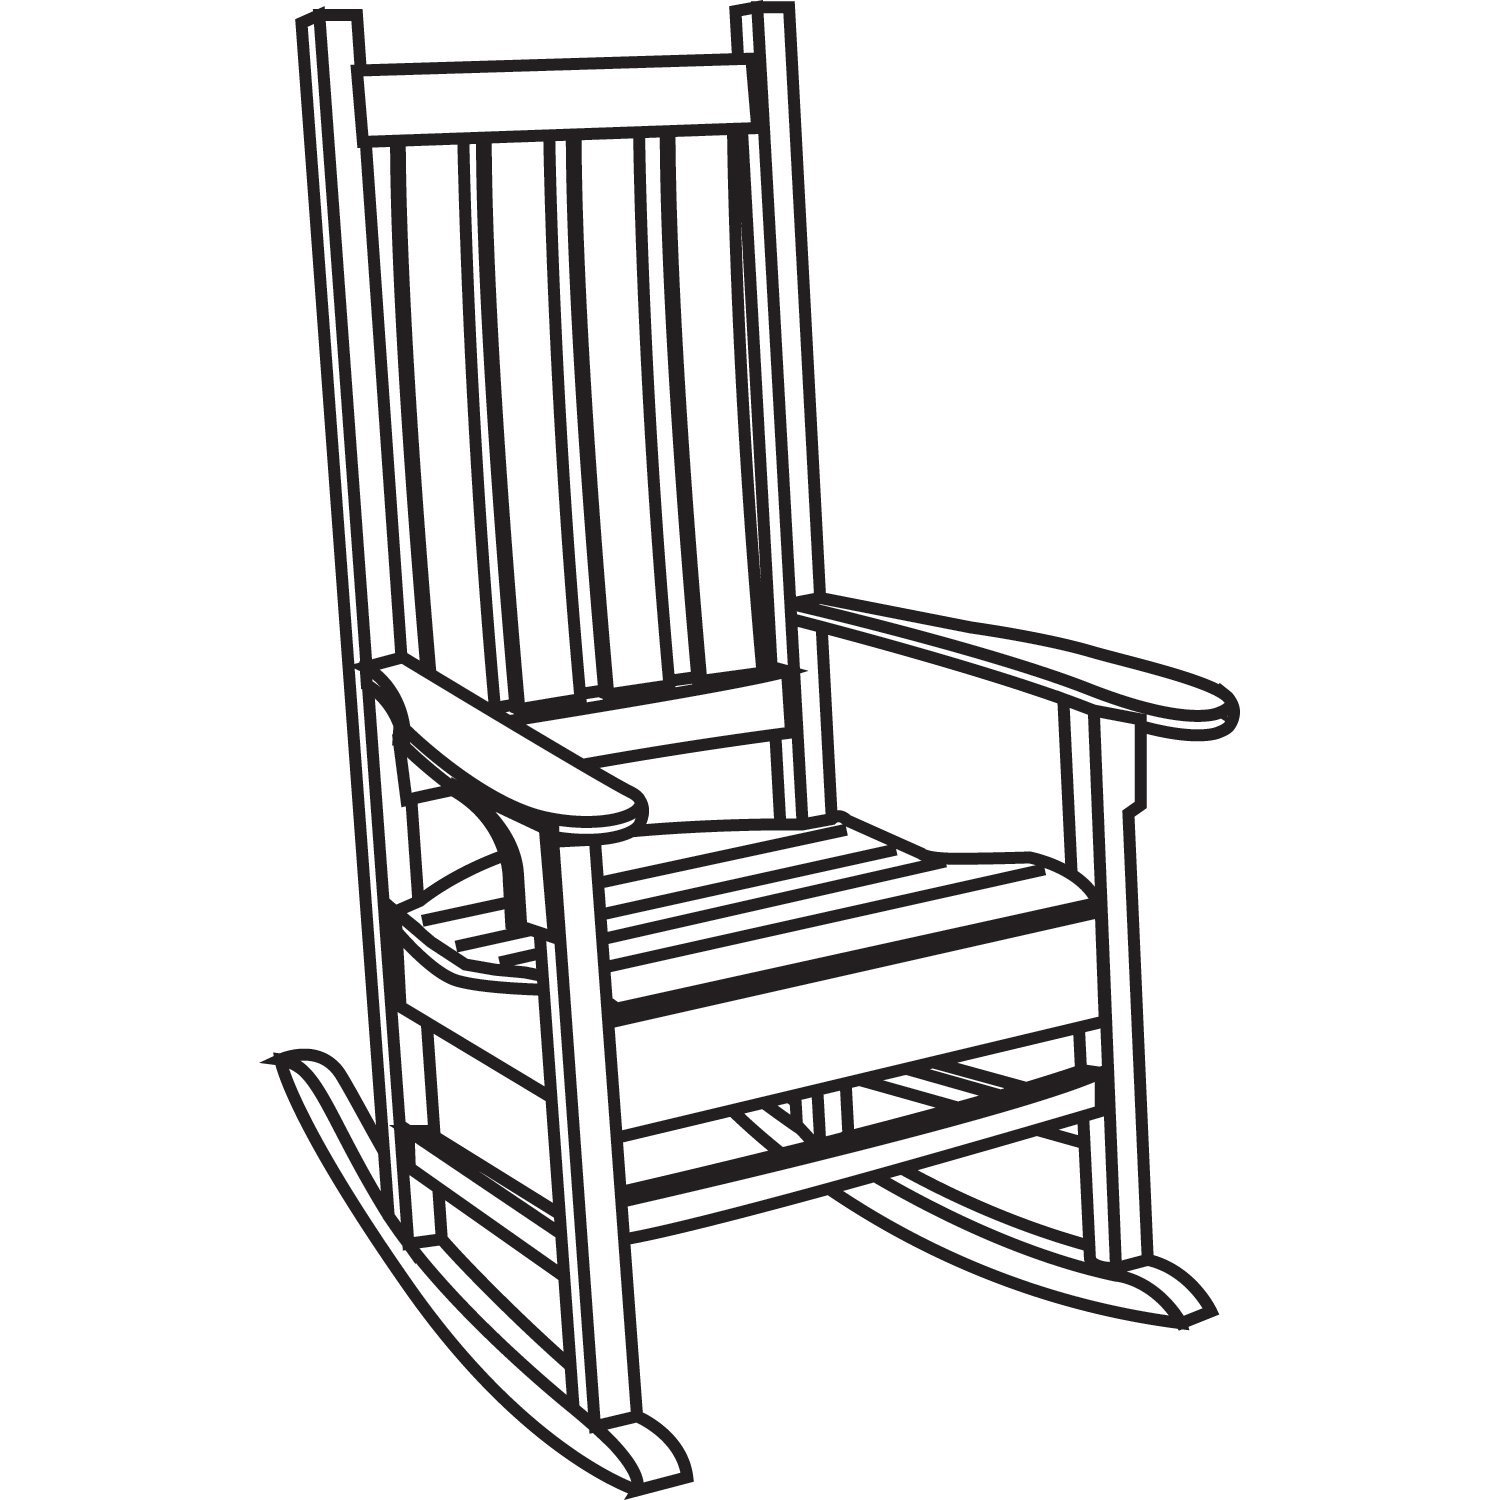 How To Draw A Rocking Chair-How To Draw A Rocking Chair-8